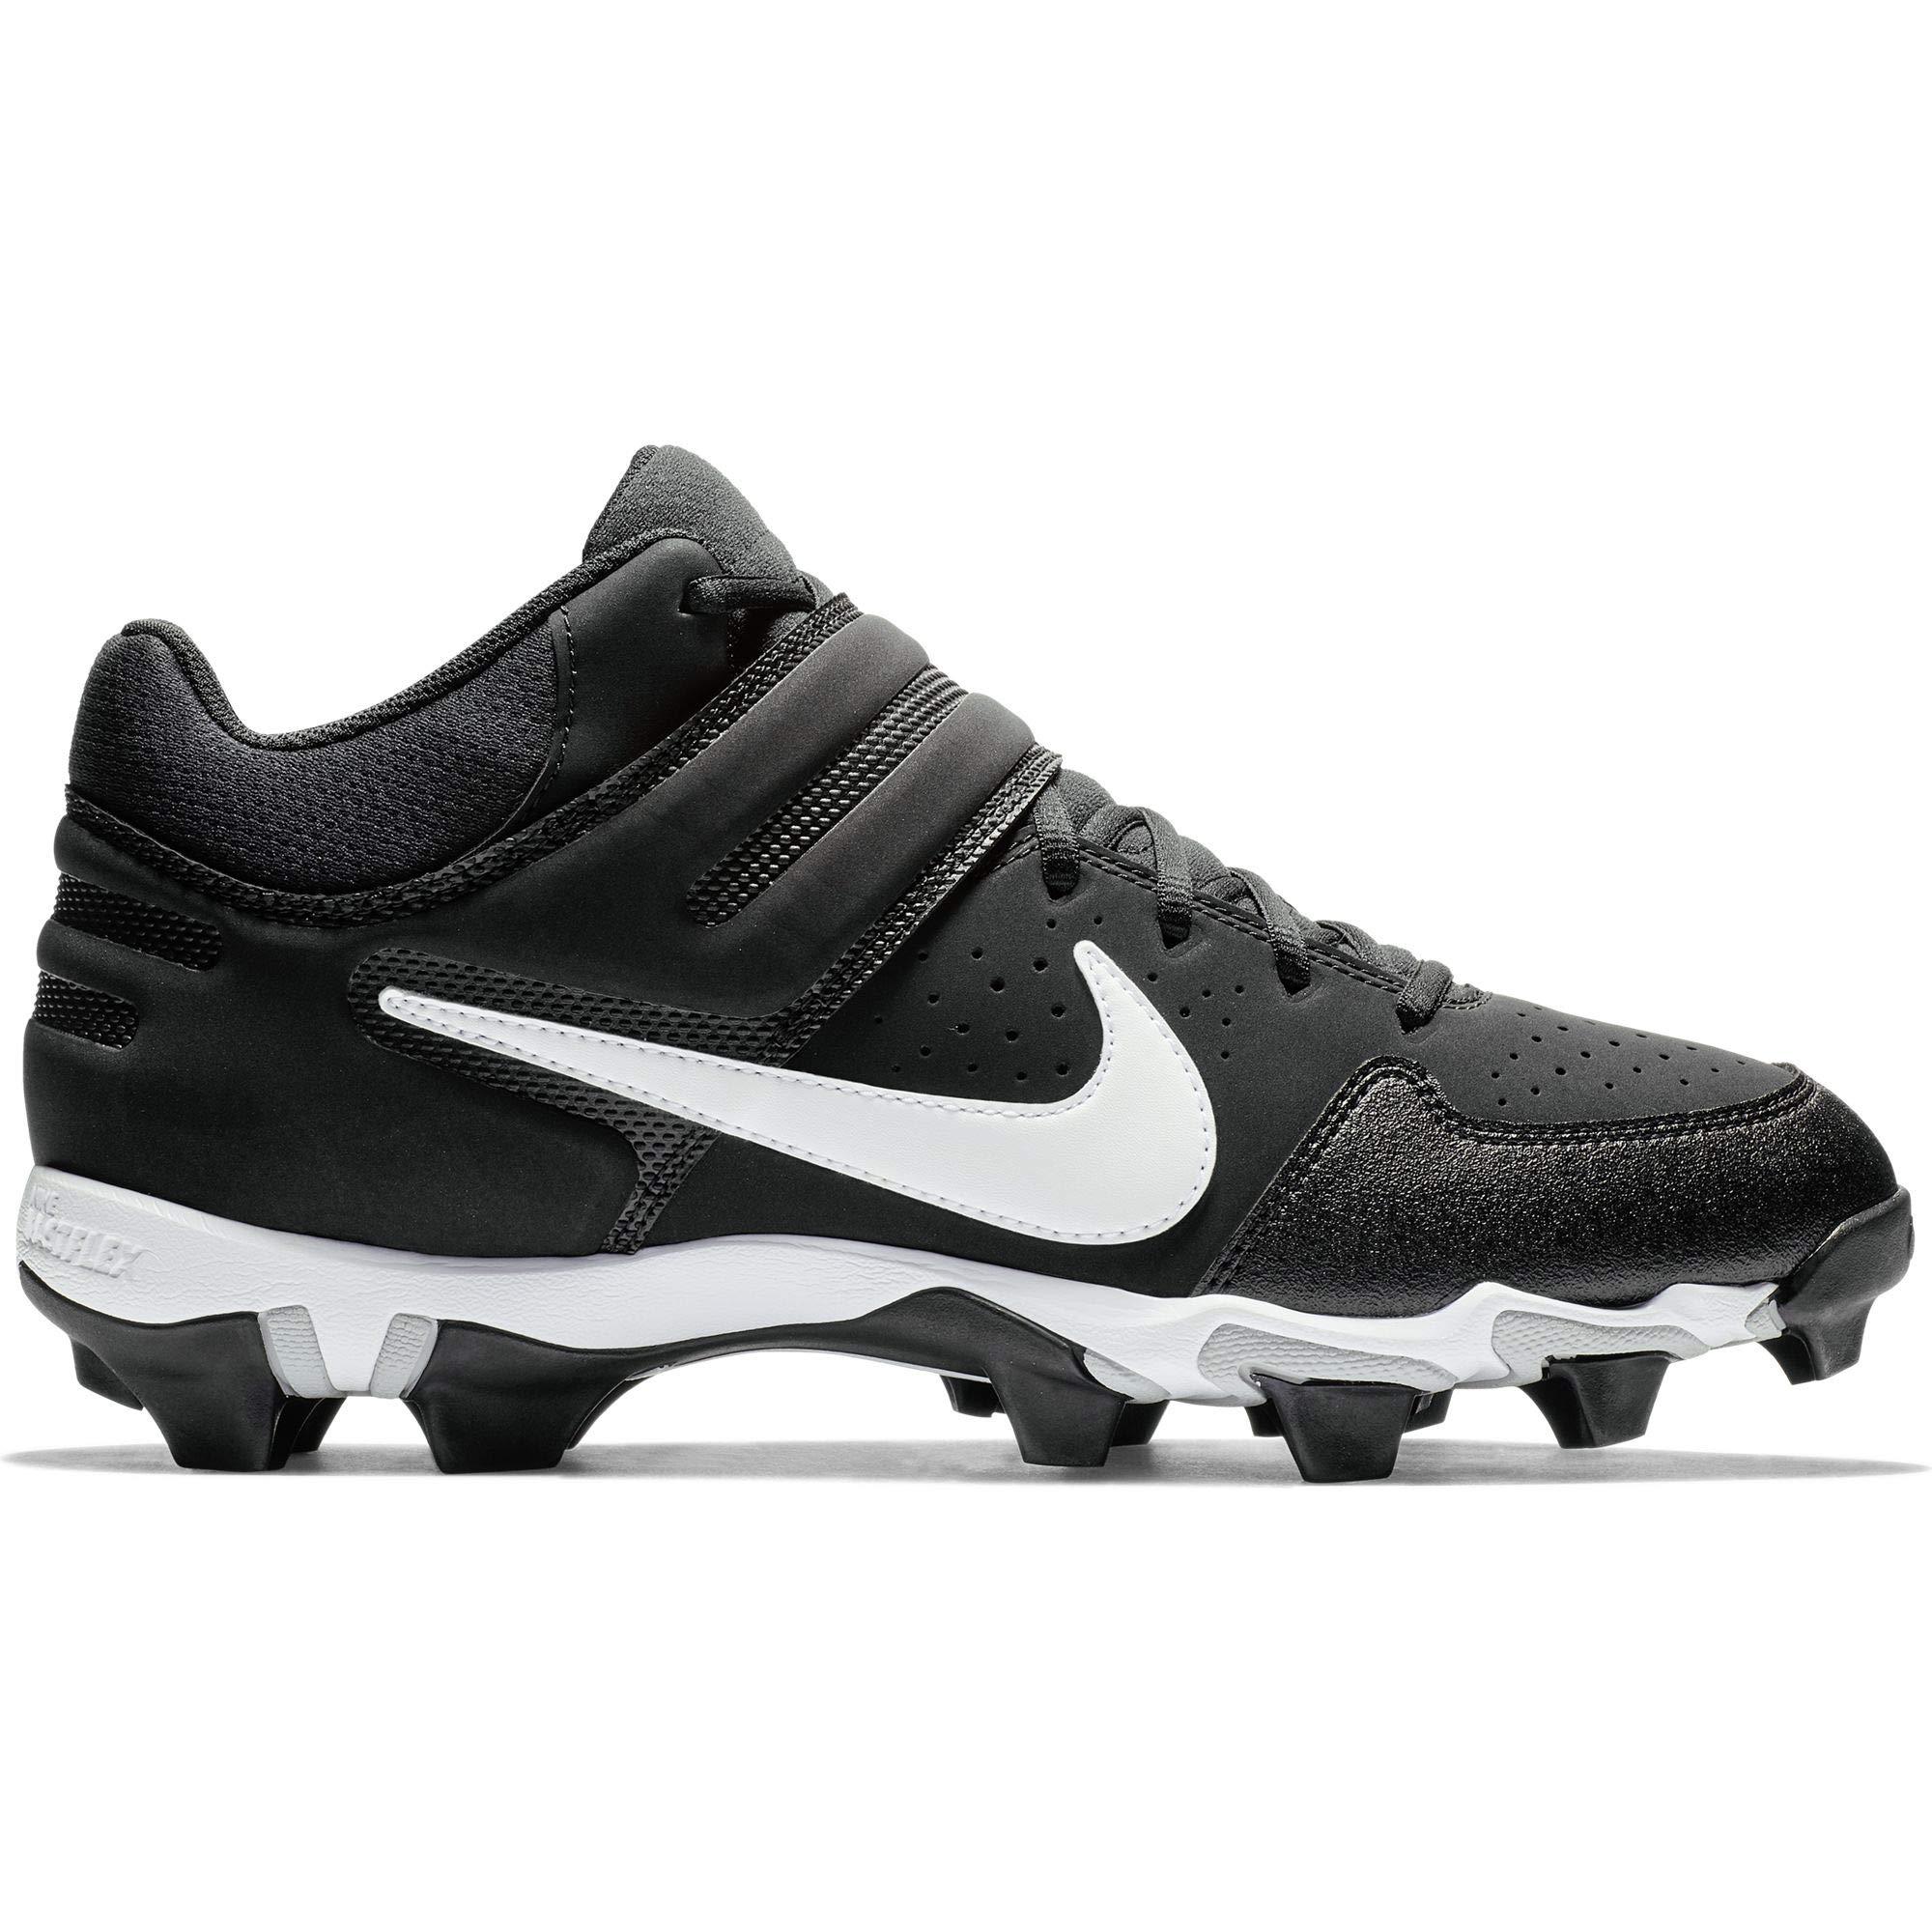 Nike Men's Alpha Huarache Varsity Keystone Mid Molded Baseball Cleat Black/White Size 6.5 M US